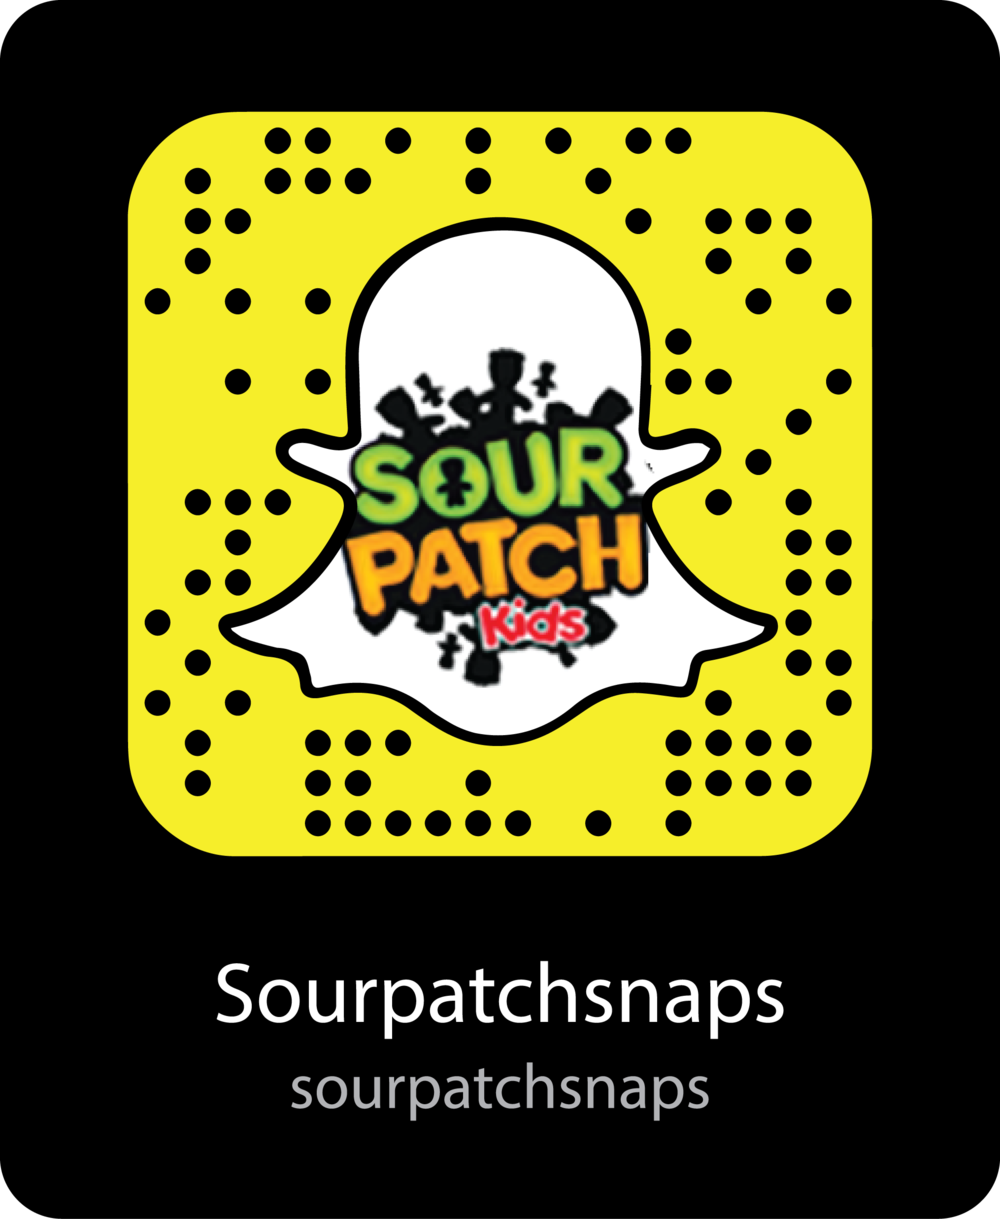 sourpatchsnaps-Brands-snapchat-snapcode.png